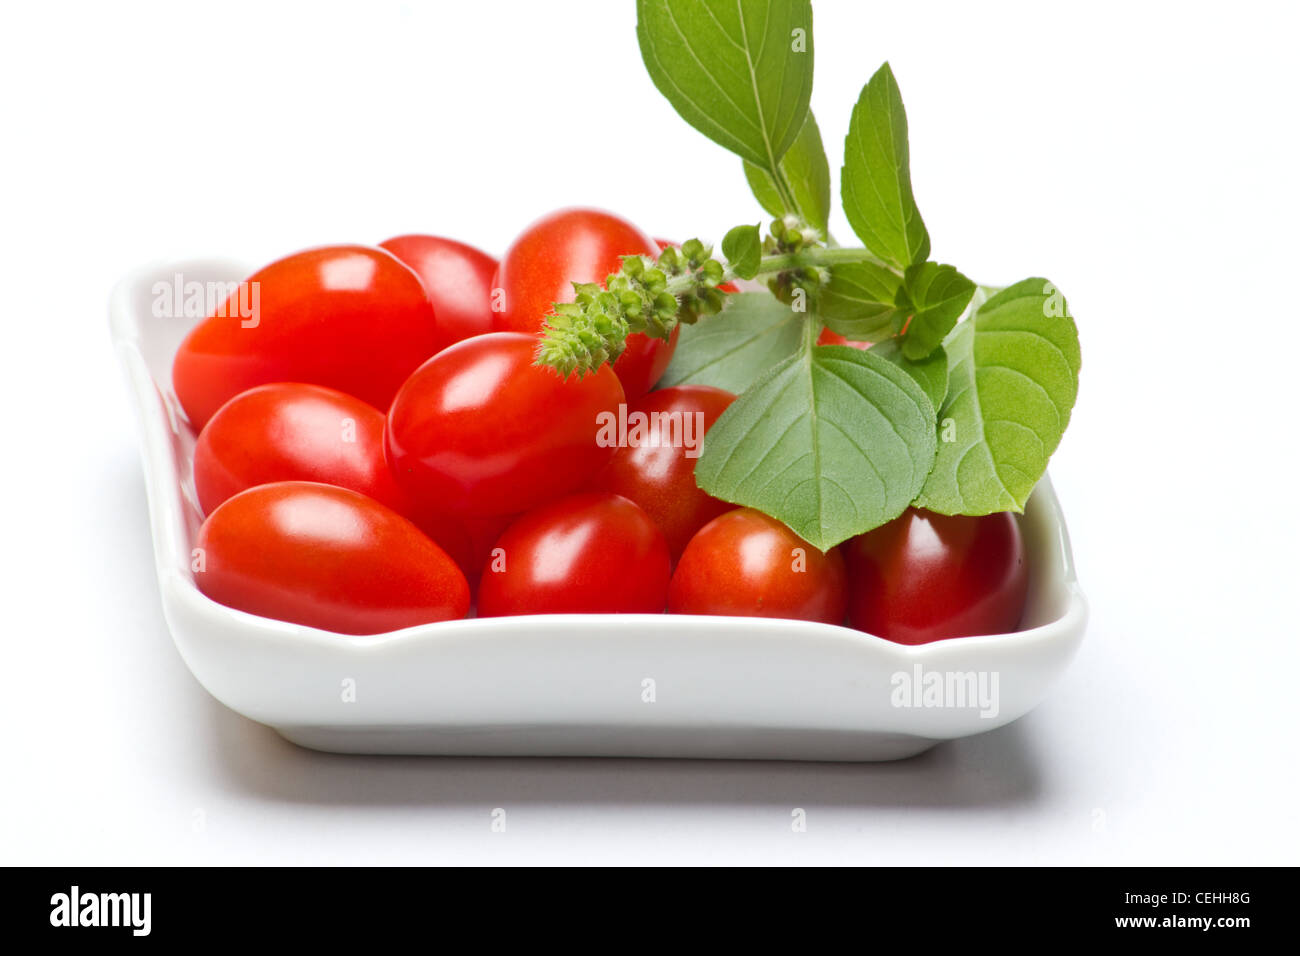 Fresh tomatoes and a sprig of basil on white background. - Stock Image